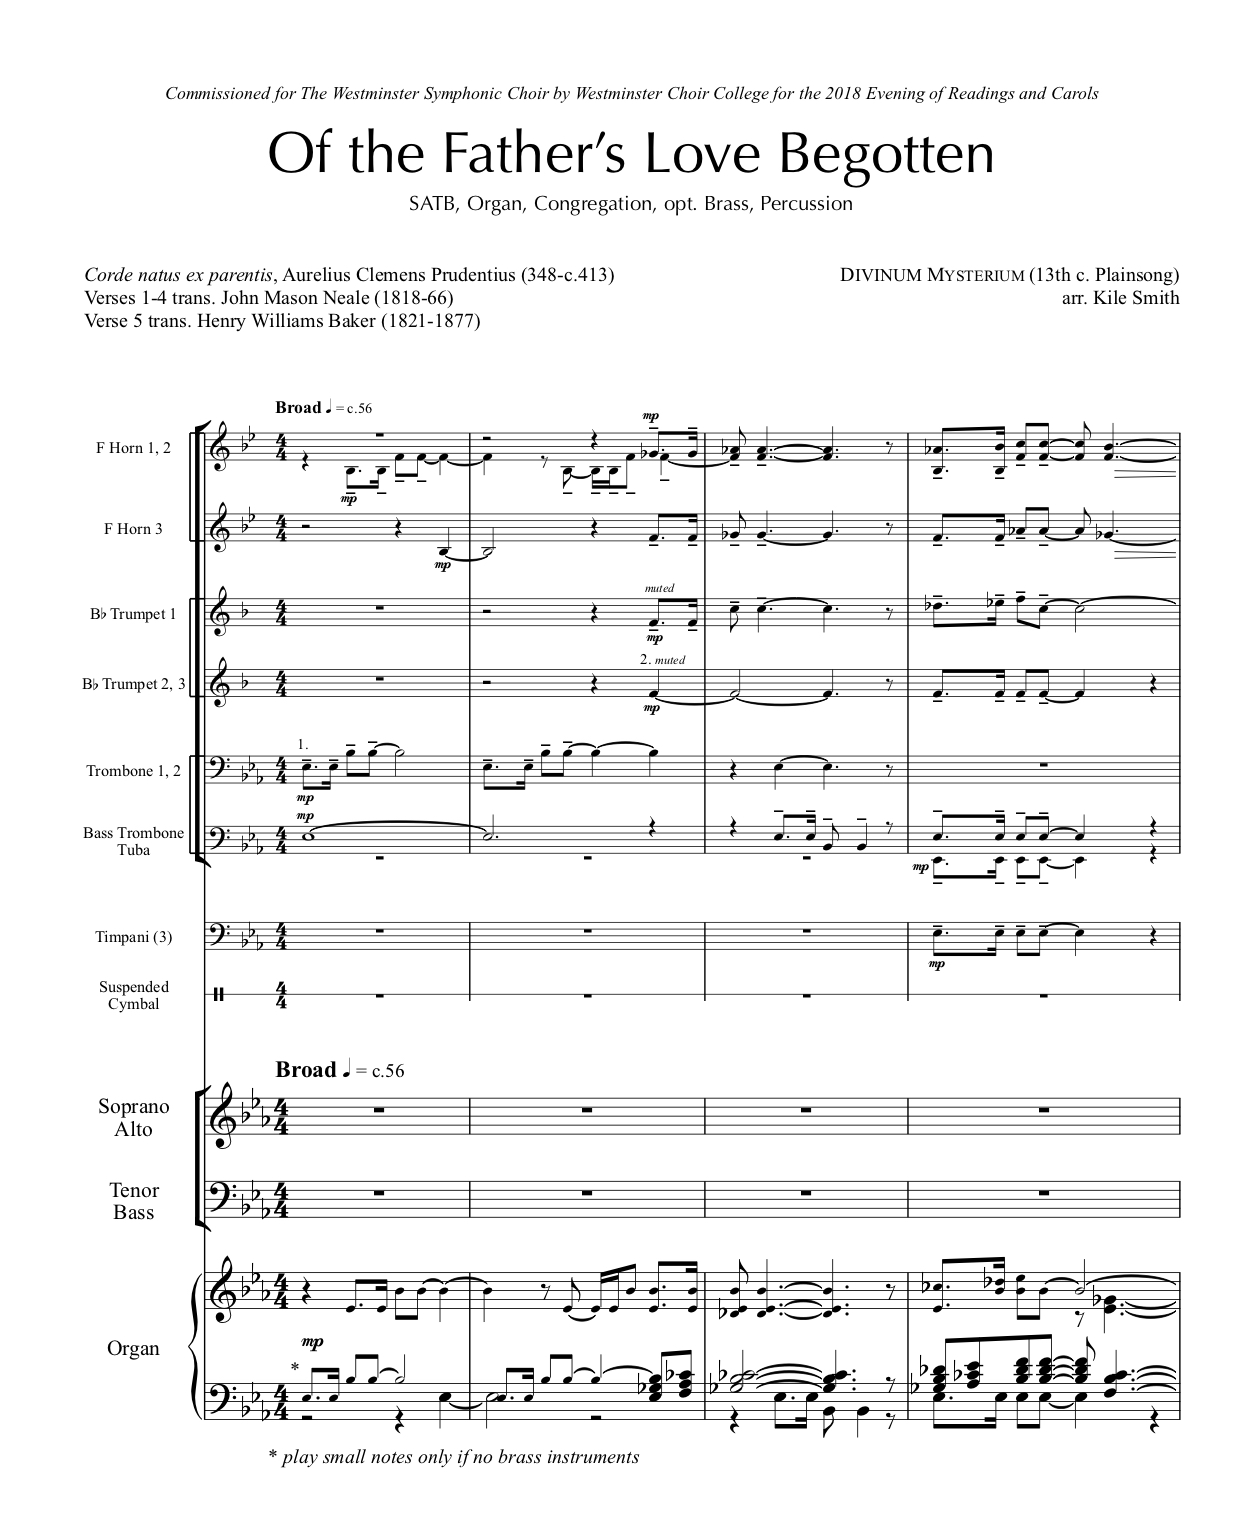 Of the Father's Love Begotten | Kile Smith • composer